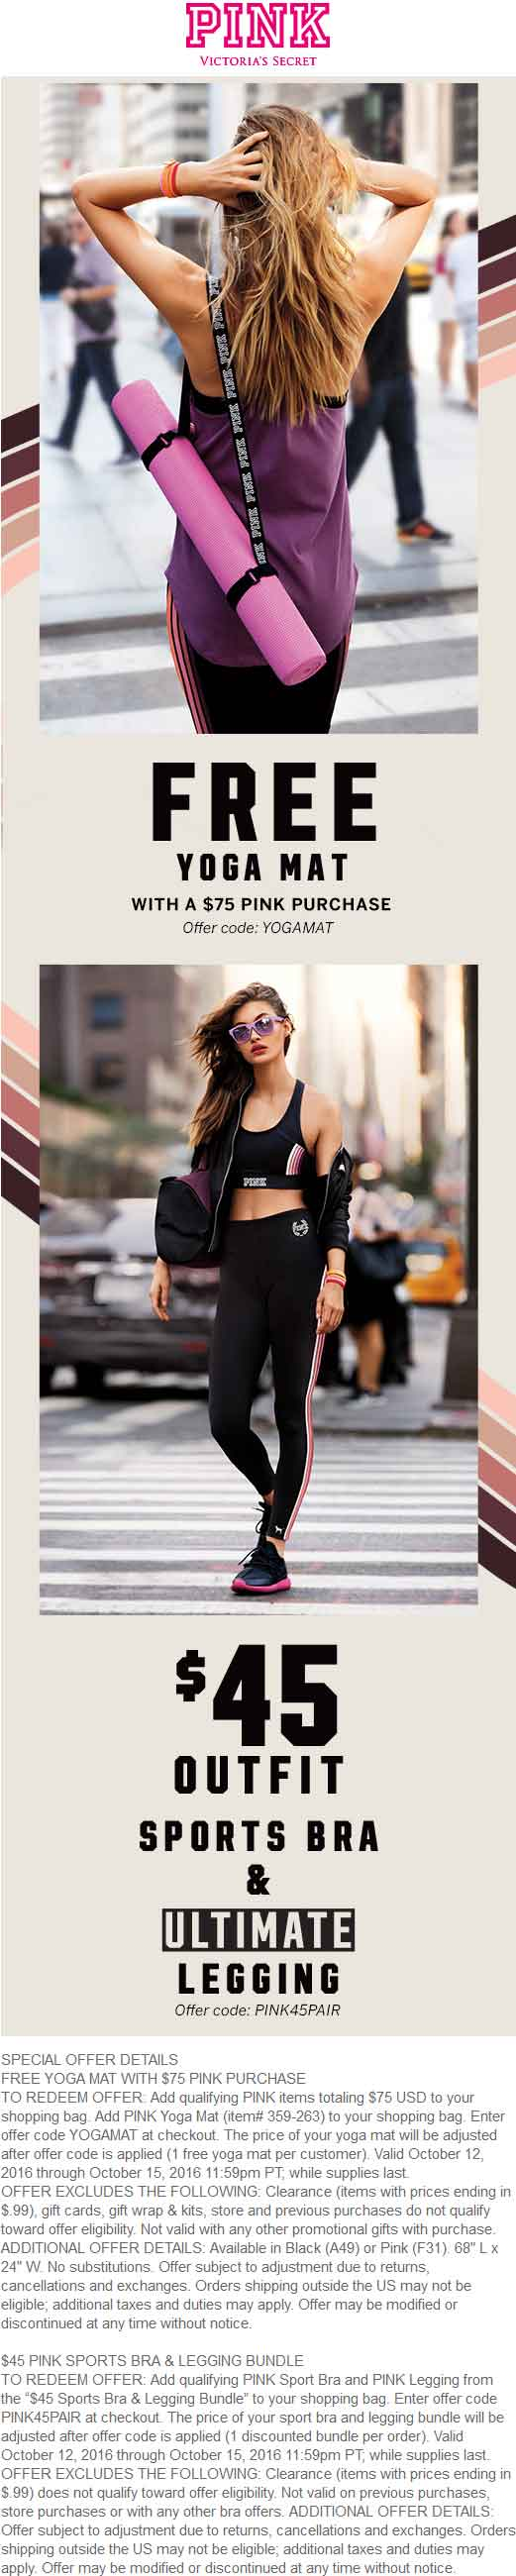 Victorias Secret Coupon January 2017 Free yoga mat with $75 on PINK spent at Victorias Secret via promo code YOGAMAT